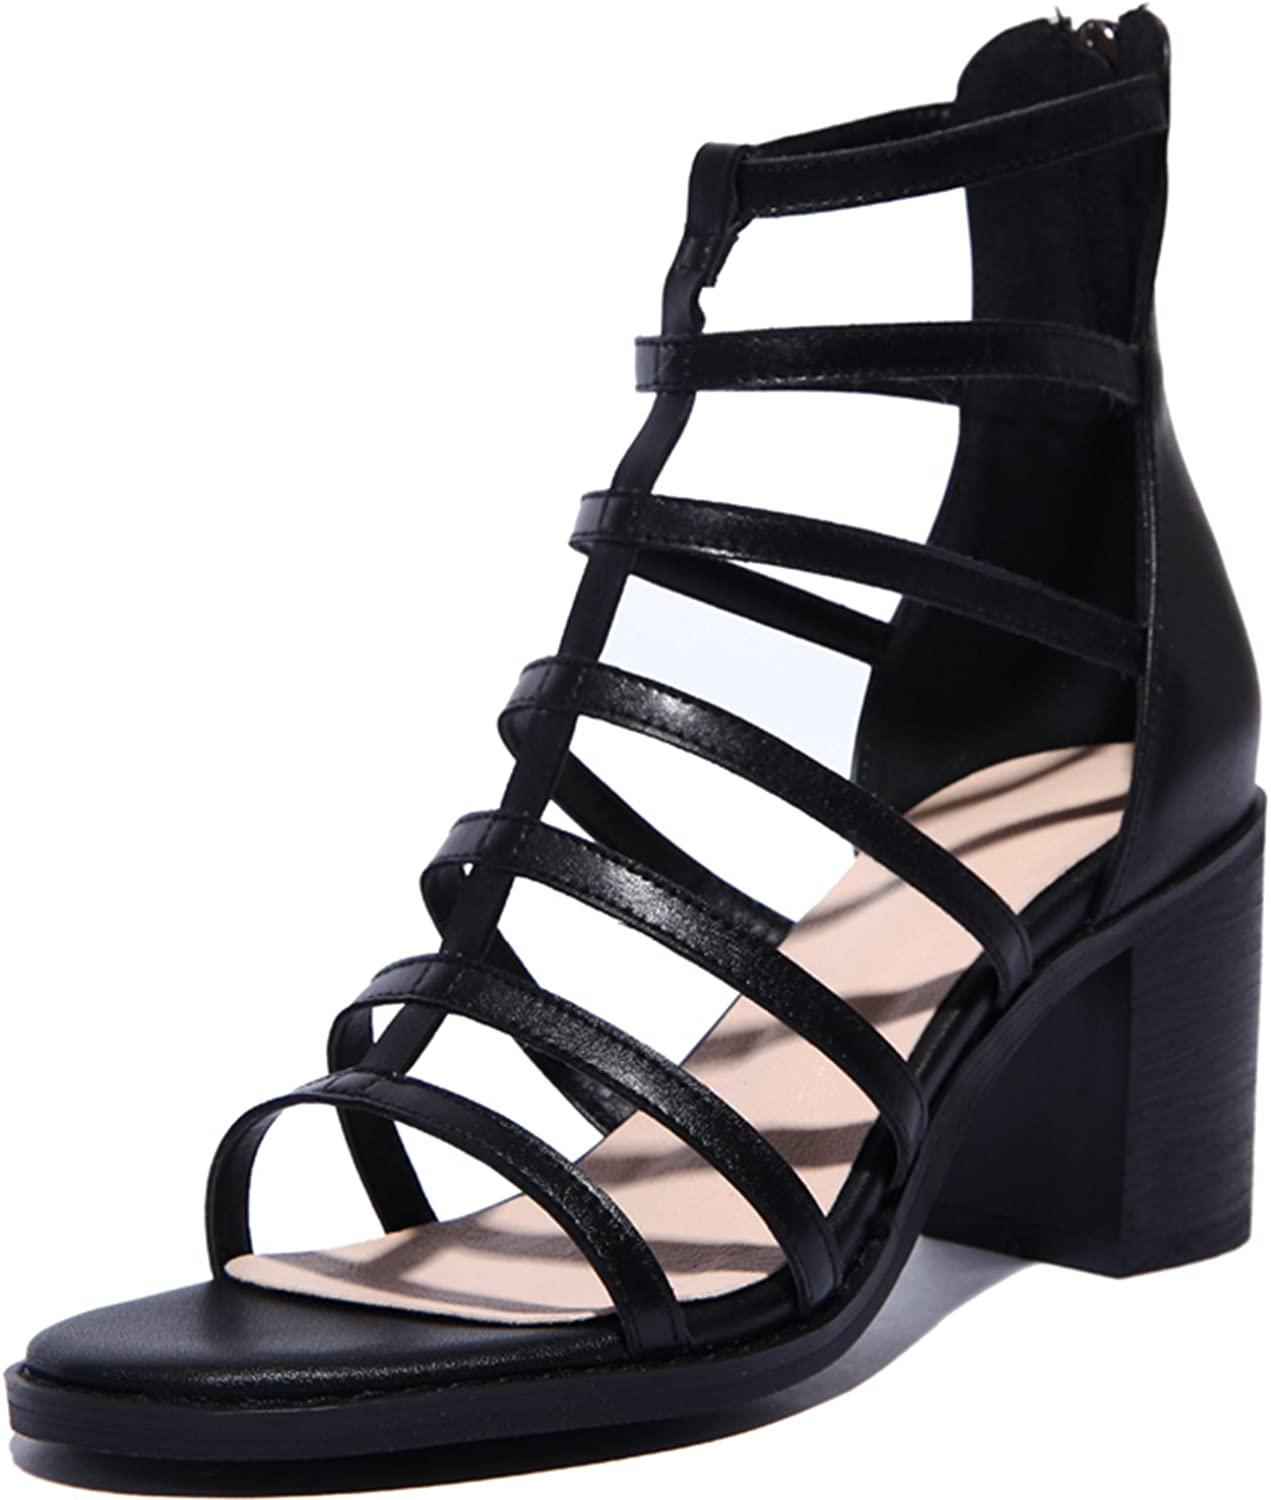 DoraTasia Women's Summer Open Toe Ankle Strap Strappy Block Chunky Sandals